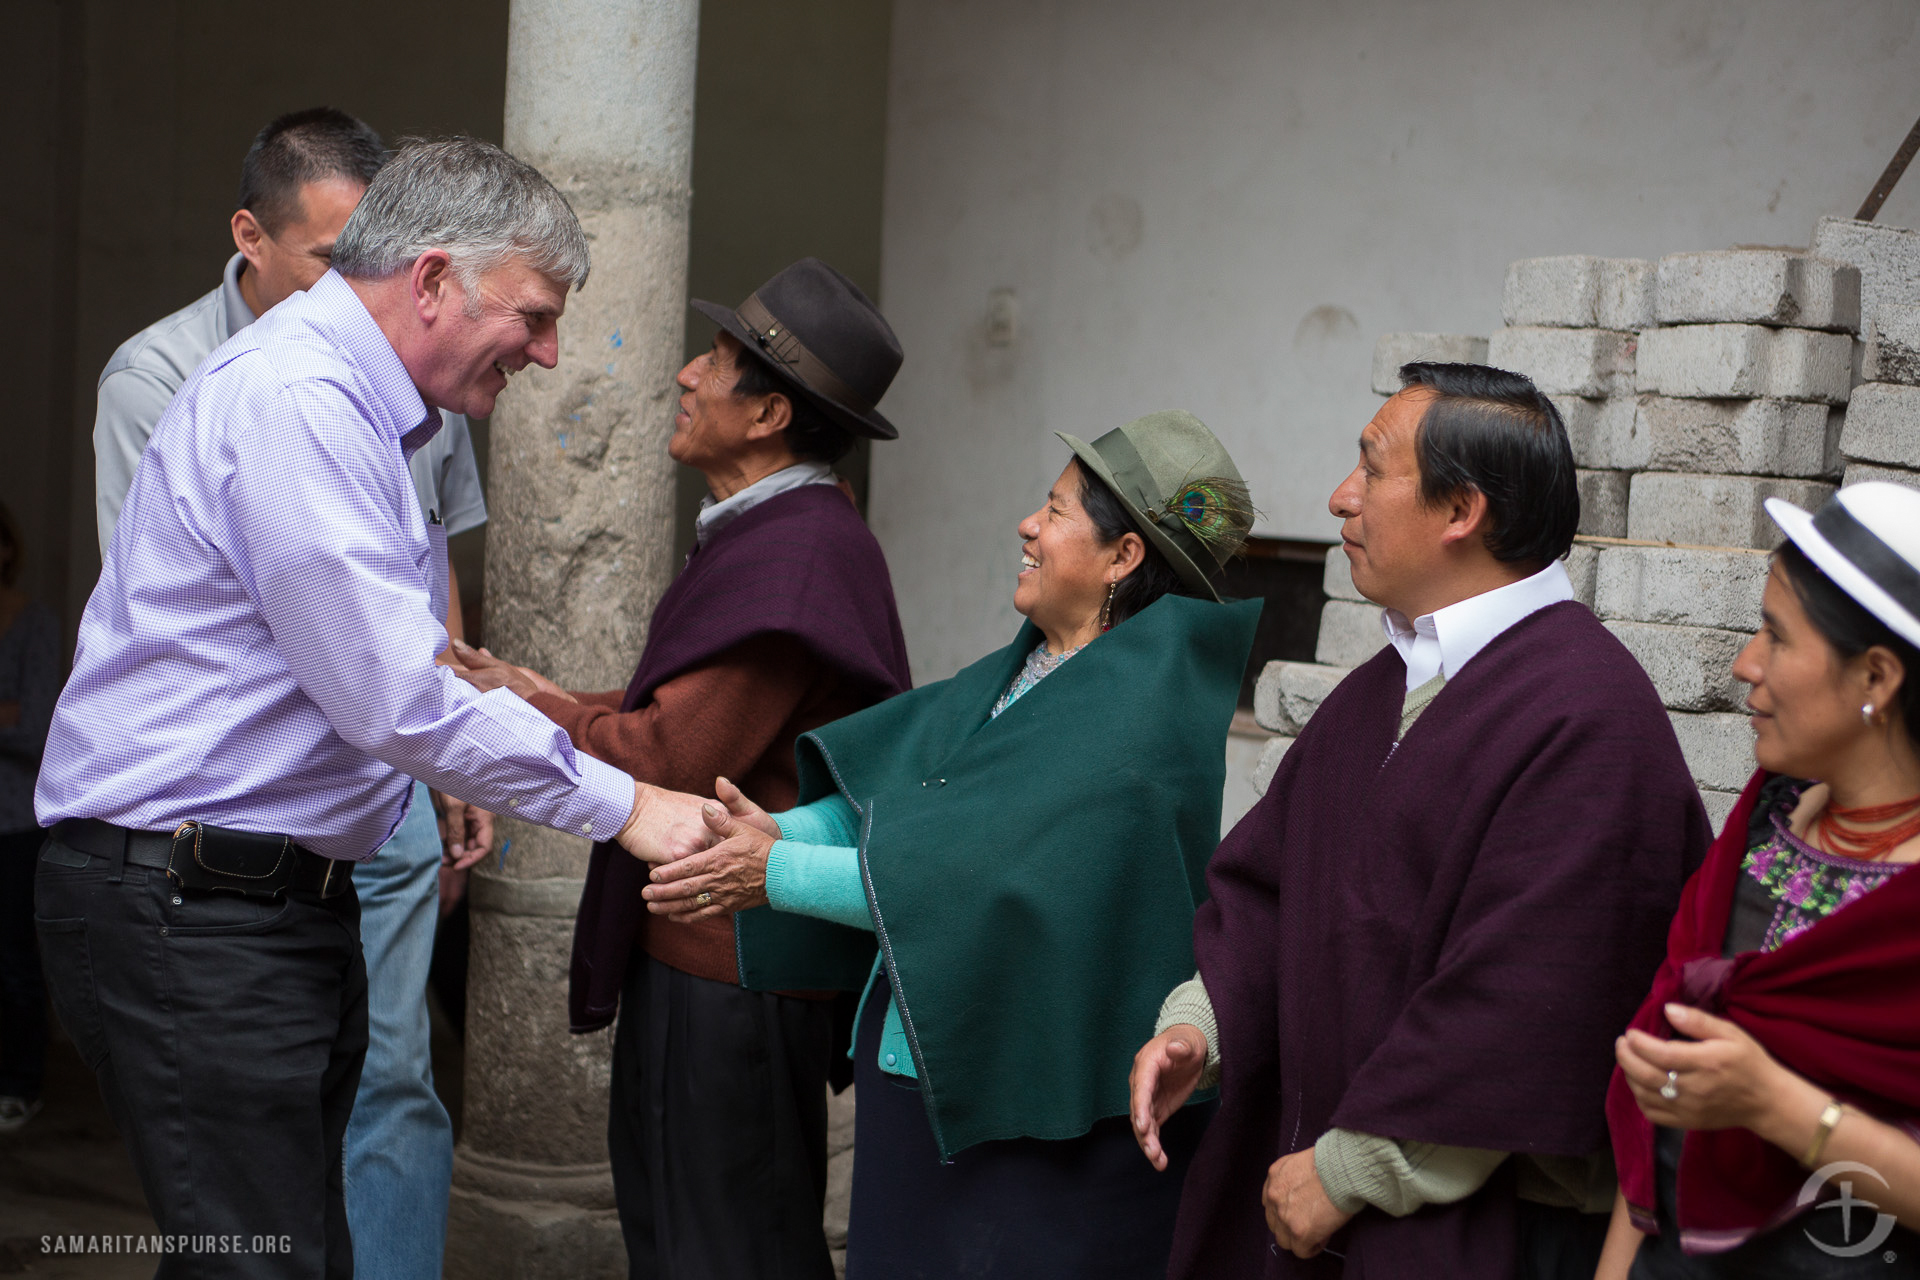 Samaritan's Purse President Franklin Graham meets members of the Operation Christmas Child national leadership team. The shoe box gifts open doors for Samaritan's Purse ministry partners to present the Gospel to children and their families.